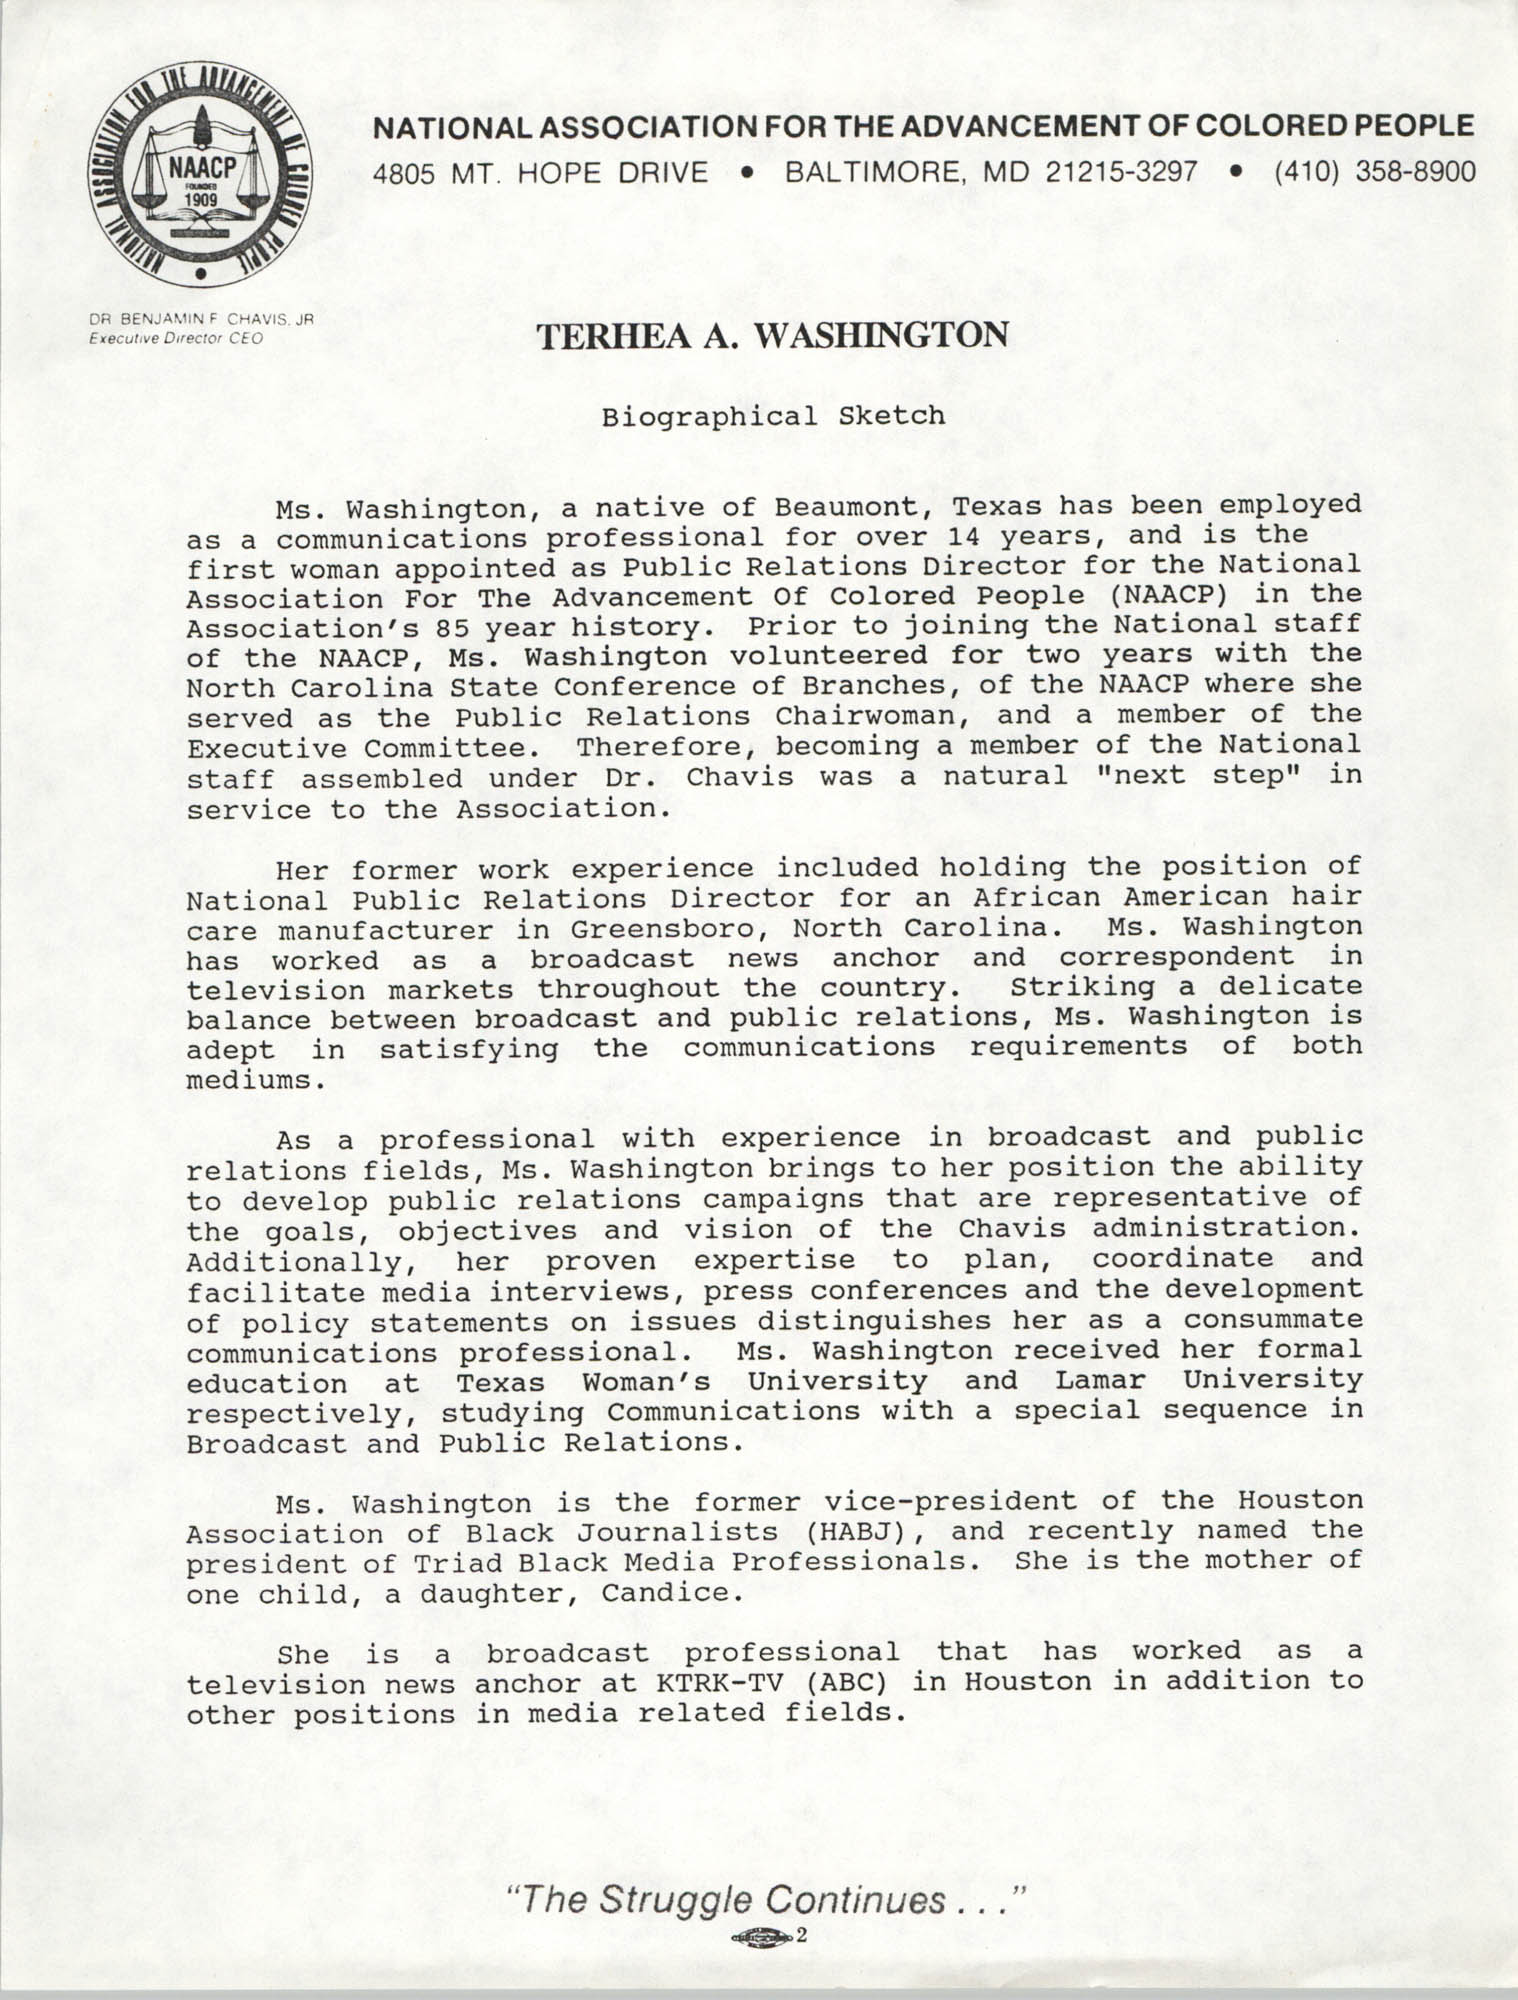 Biographical Sketch of Terhea A. Washington